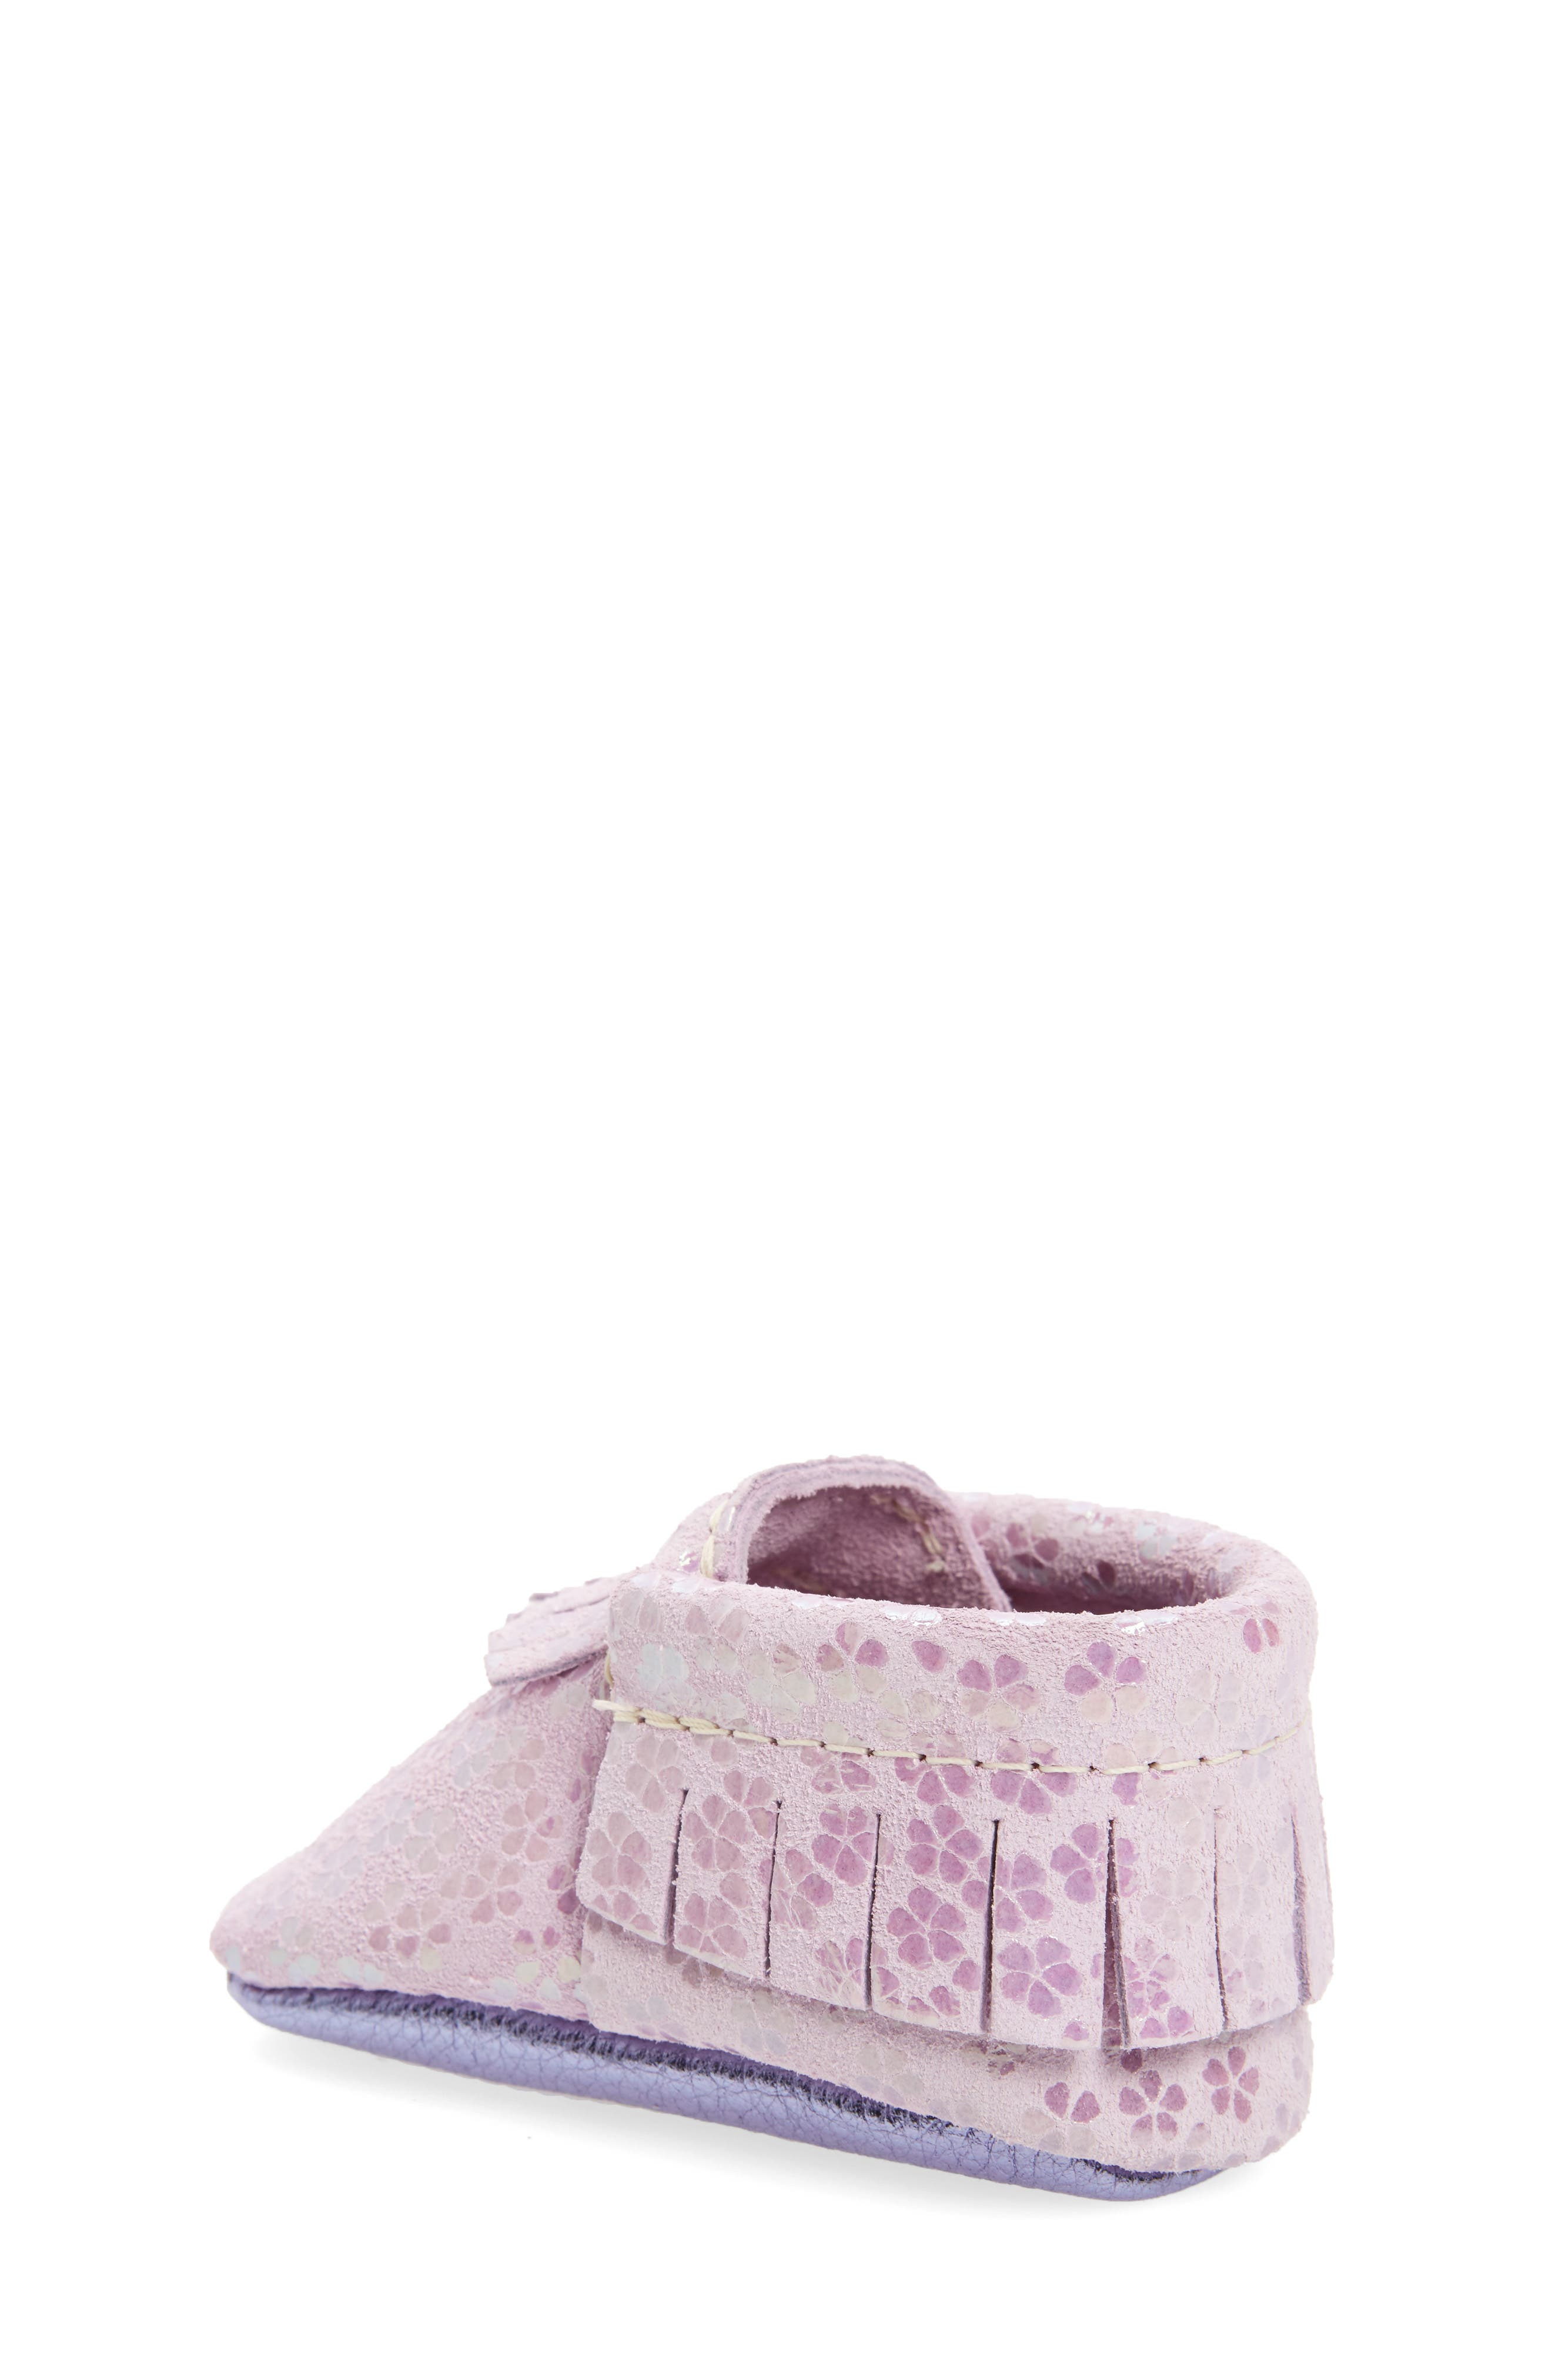 Lilac Blossom Moccasin,                             Alternate thumbnail 2, color,                             Lilac Blossom